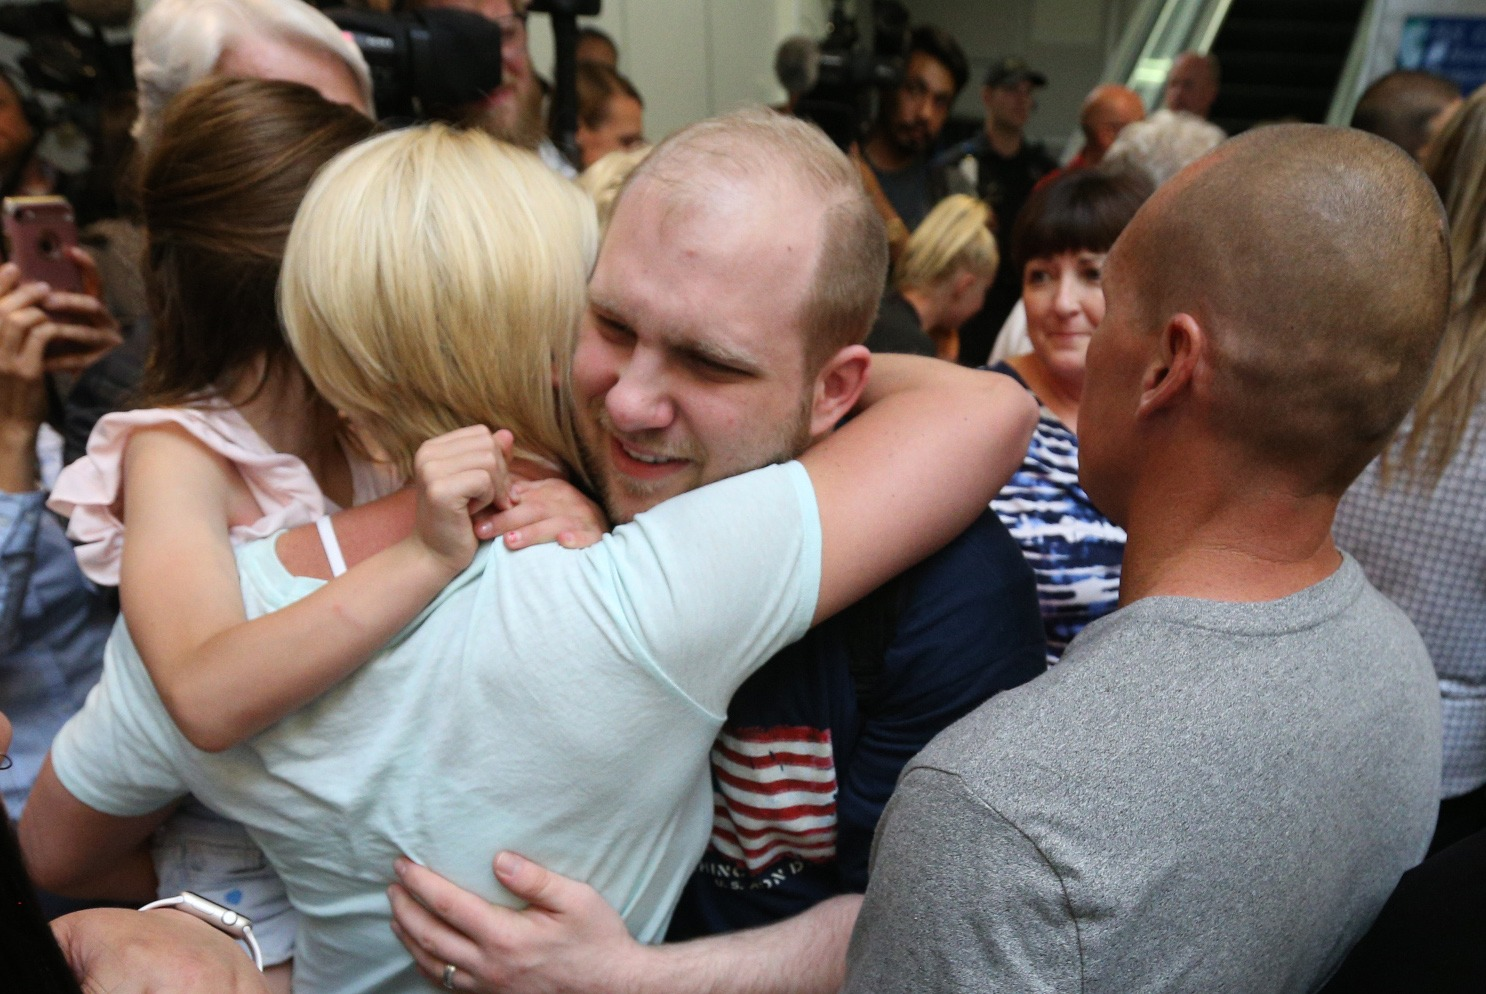 Friends and family hug and greet Josh Holt, upon his return to Utah at the Salt Lake City International Airport on May 28, 2018 in Salt Lake City, Utah.